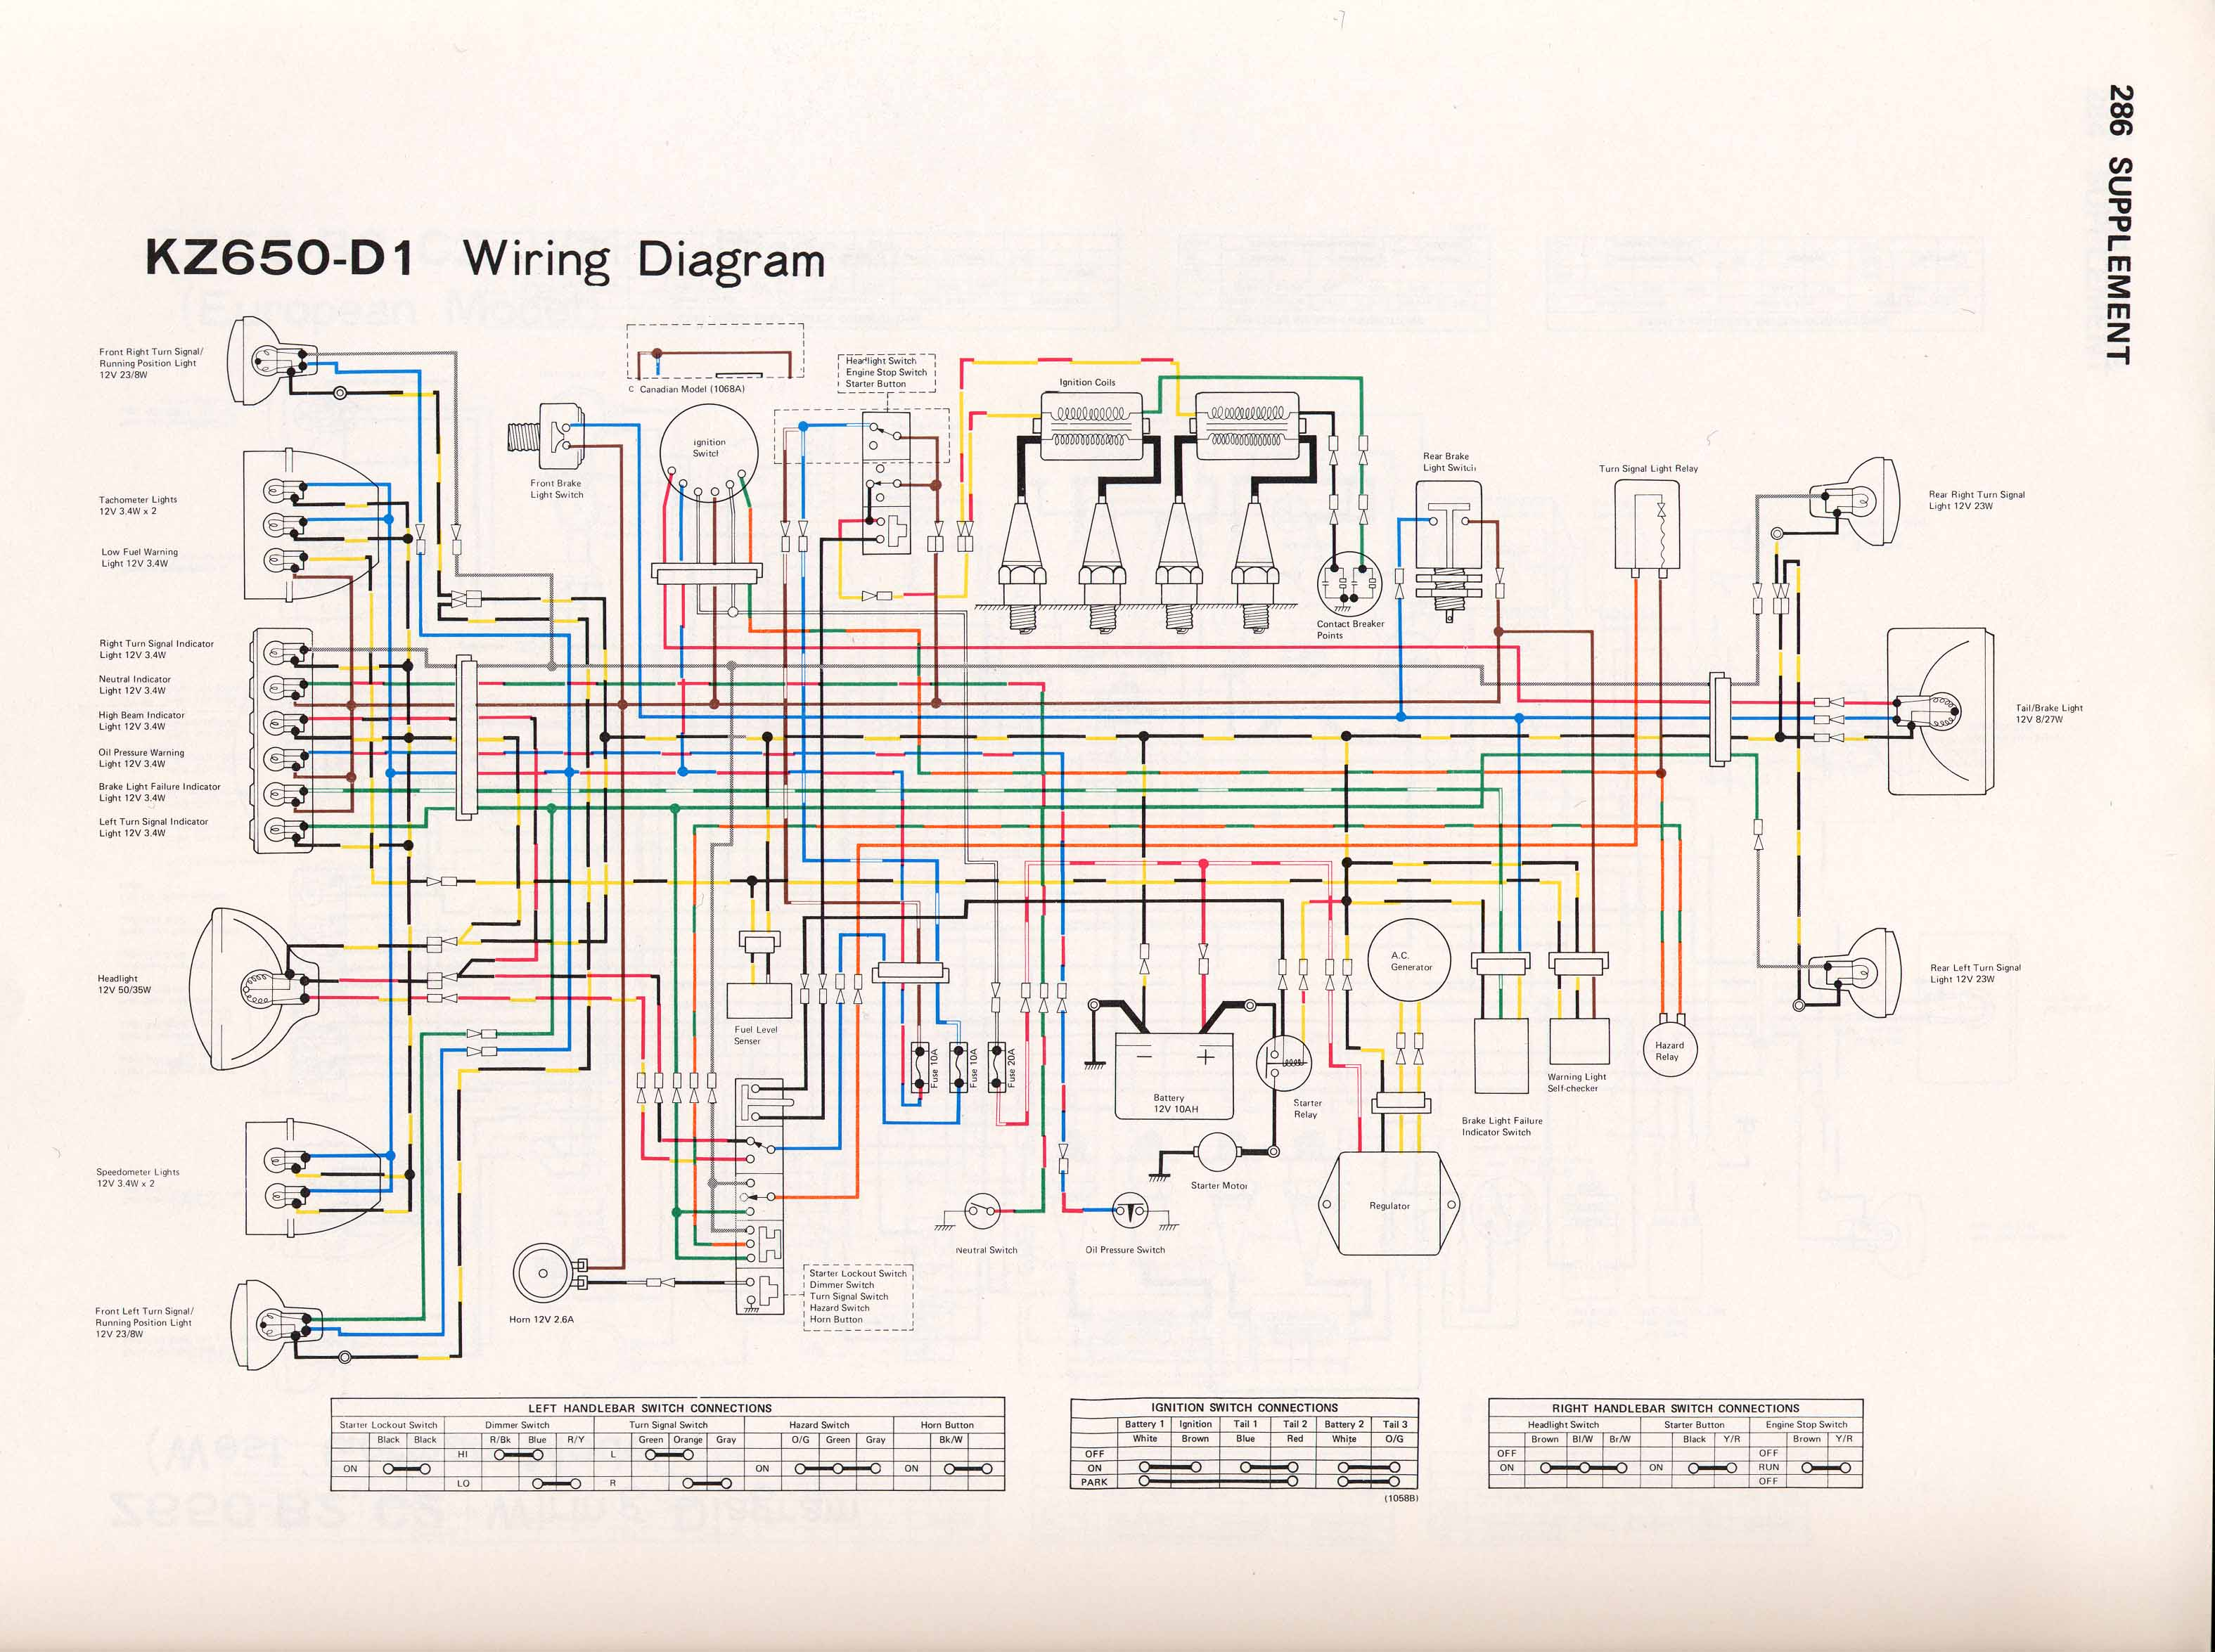 Wiring Diagram For Kawasaki Bayou 300 Z650 Center Kz650 Info Diagrams Rh Mule Diagr Klf